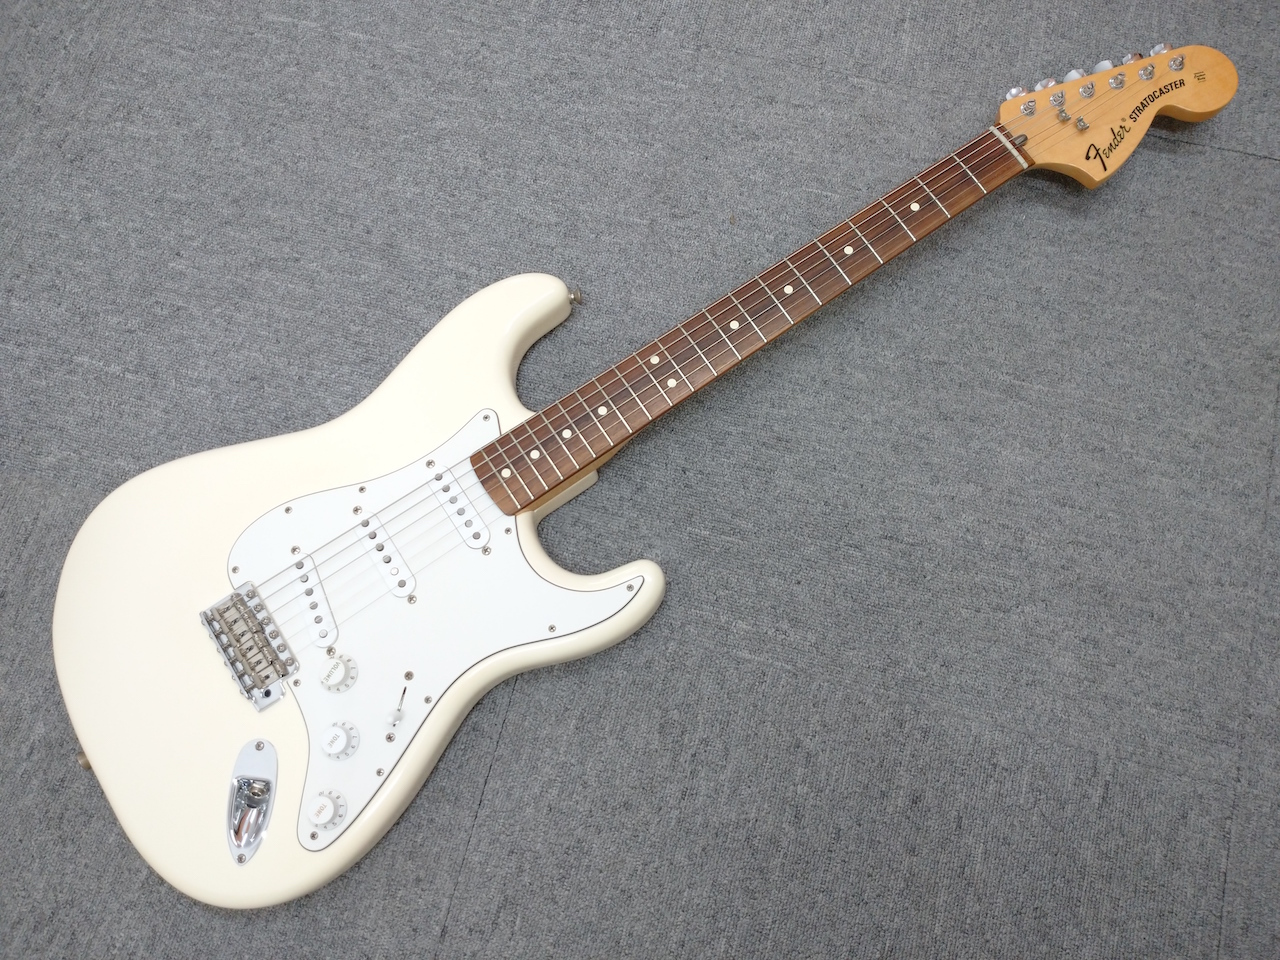 fender (フェンダー) / Classic Series 70's Stratocaster Olympic White ストラトキャスター 【USED】